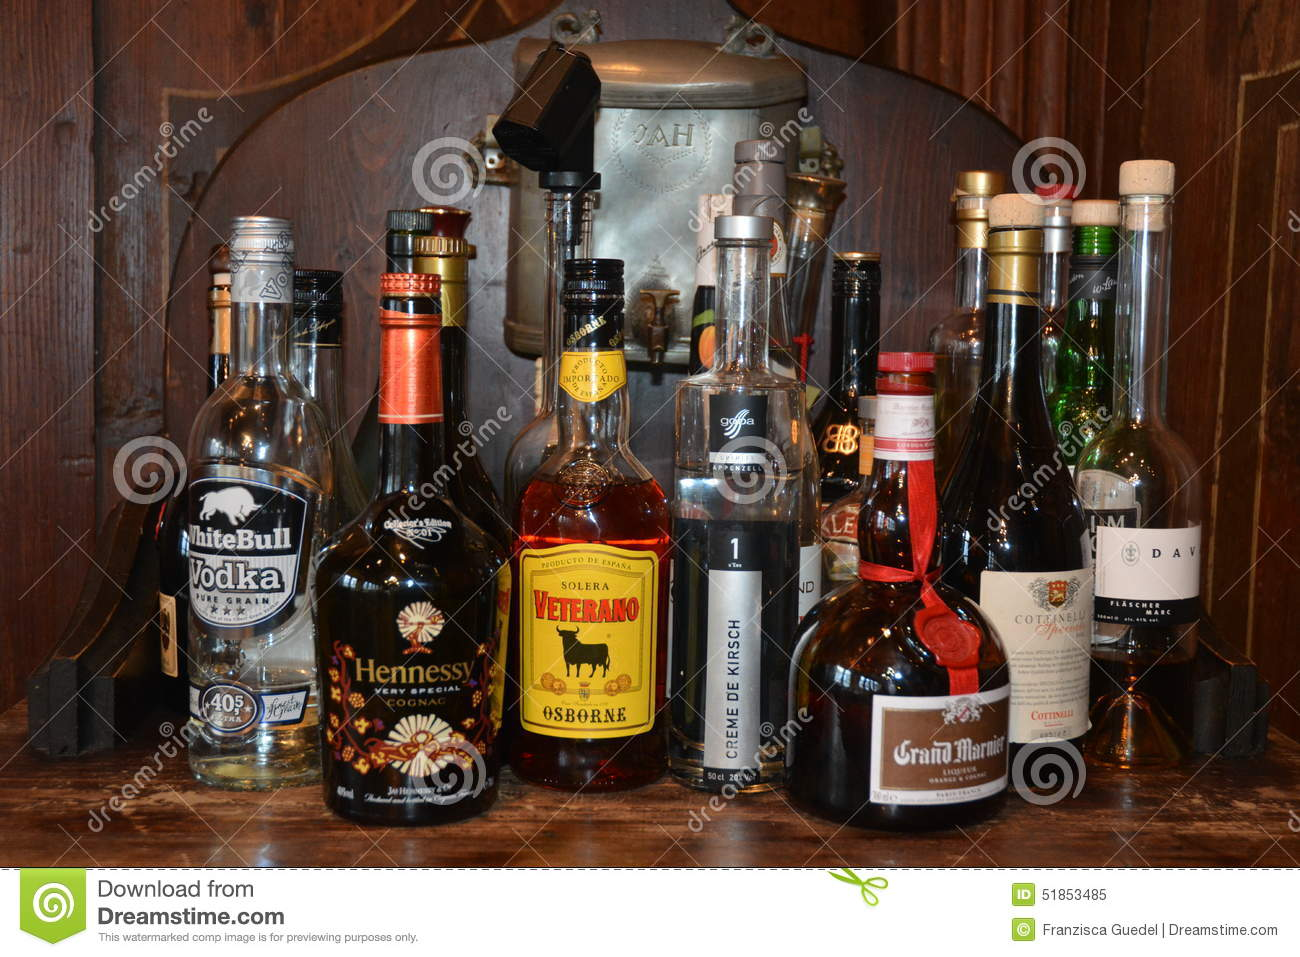 Dozen Bottles Red Wine All Different 185888366 also Schenley Whiskey furthermore Beer Sign furthermore Vintage Glass Beer Bottles moreover Stock Images Liquor Choice Variety Display Bar Shelves Photo Was Taken August Image32785254. on tavern liquor display